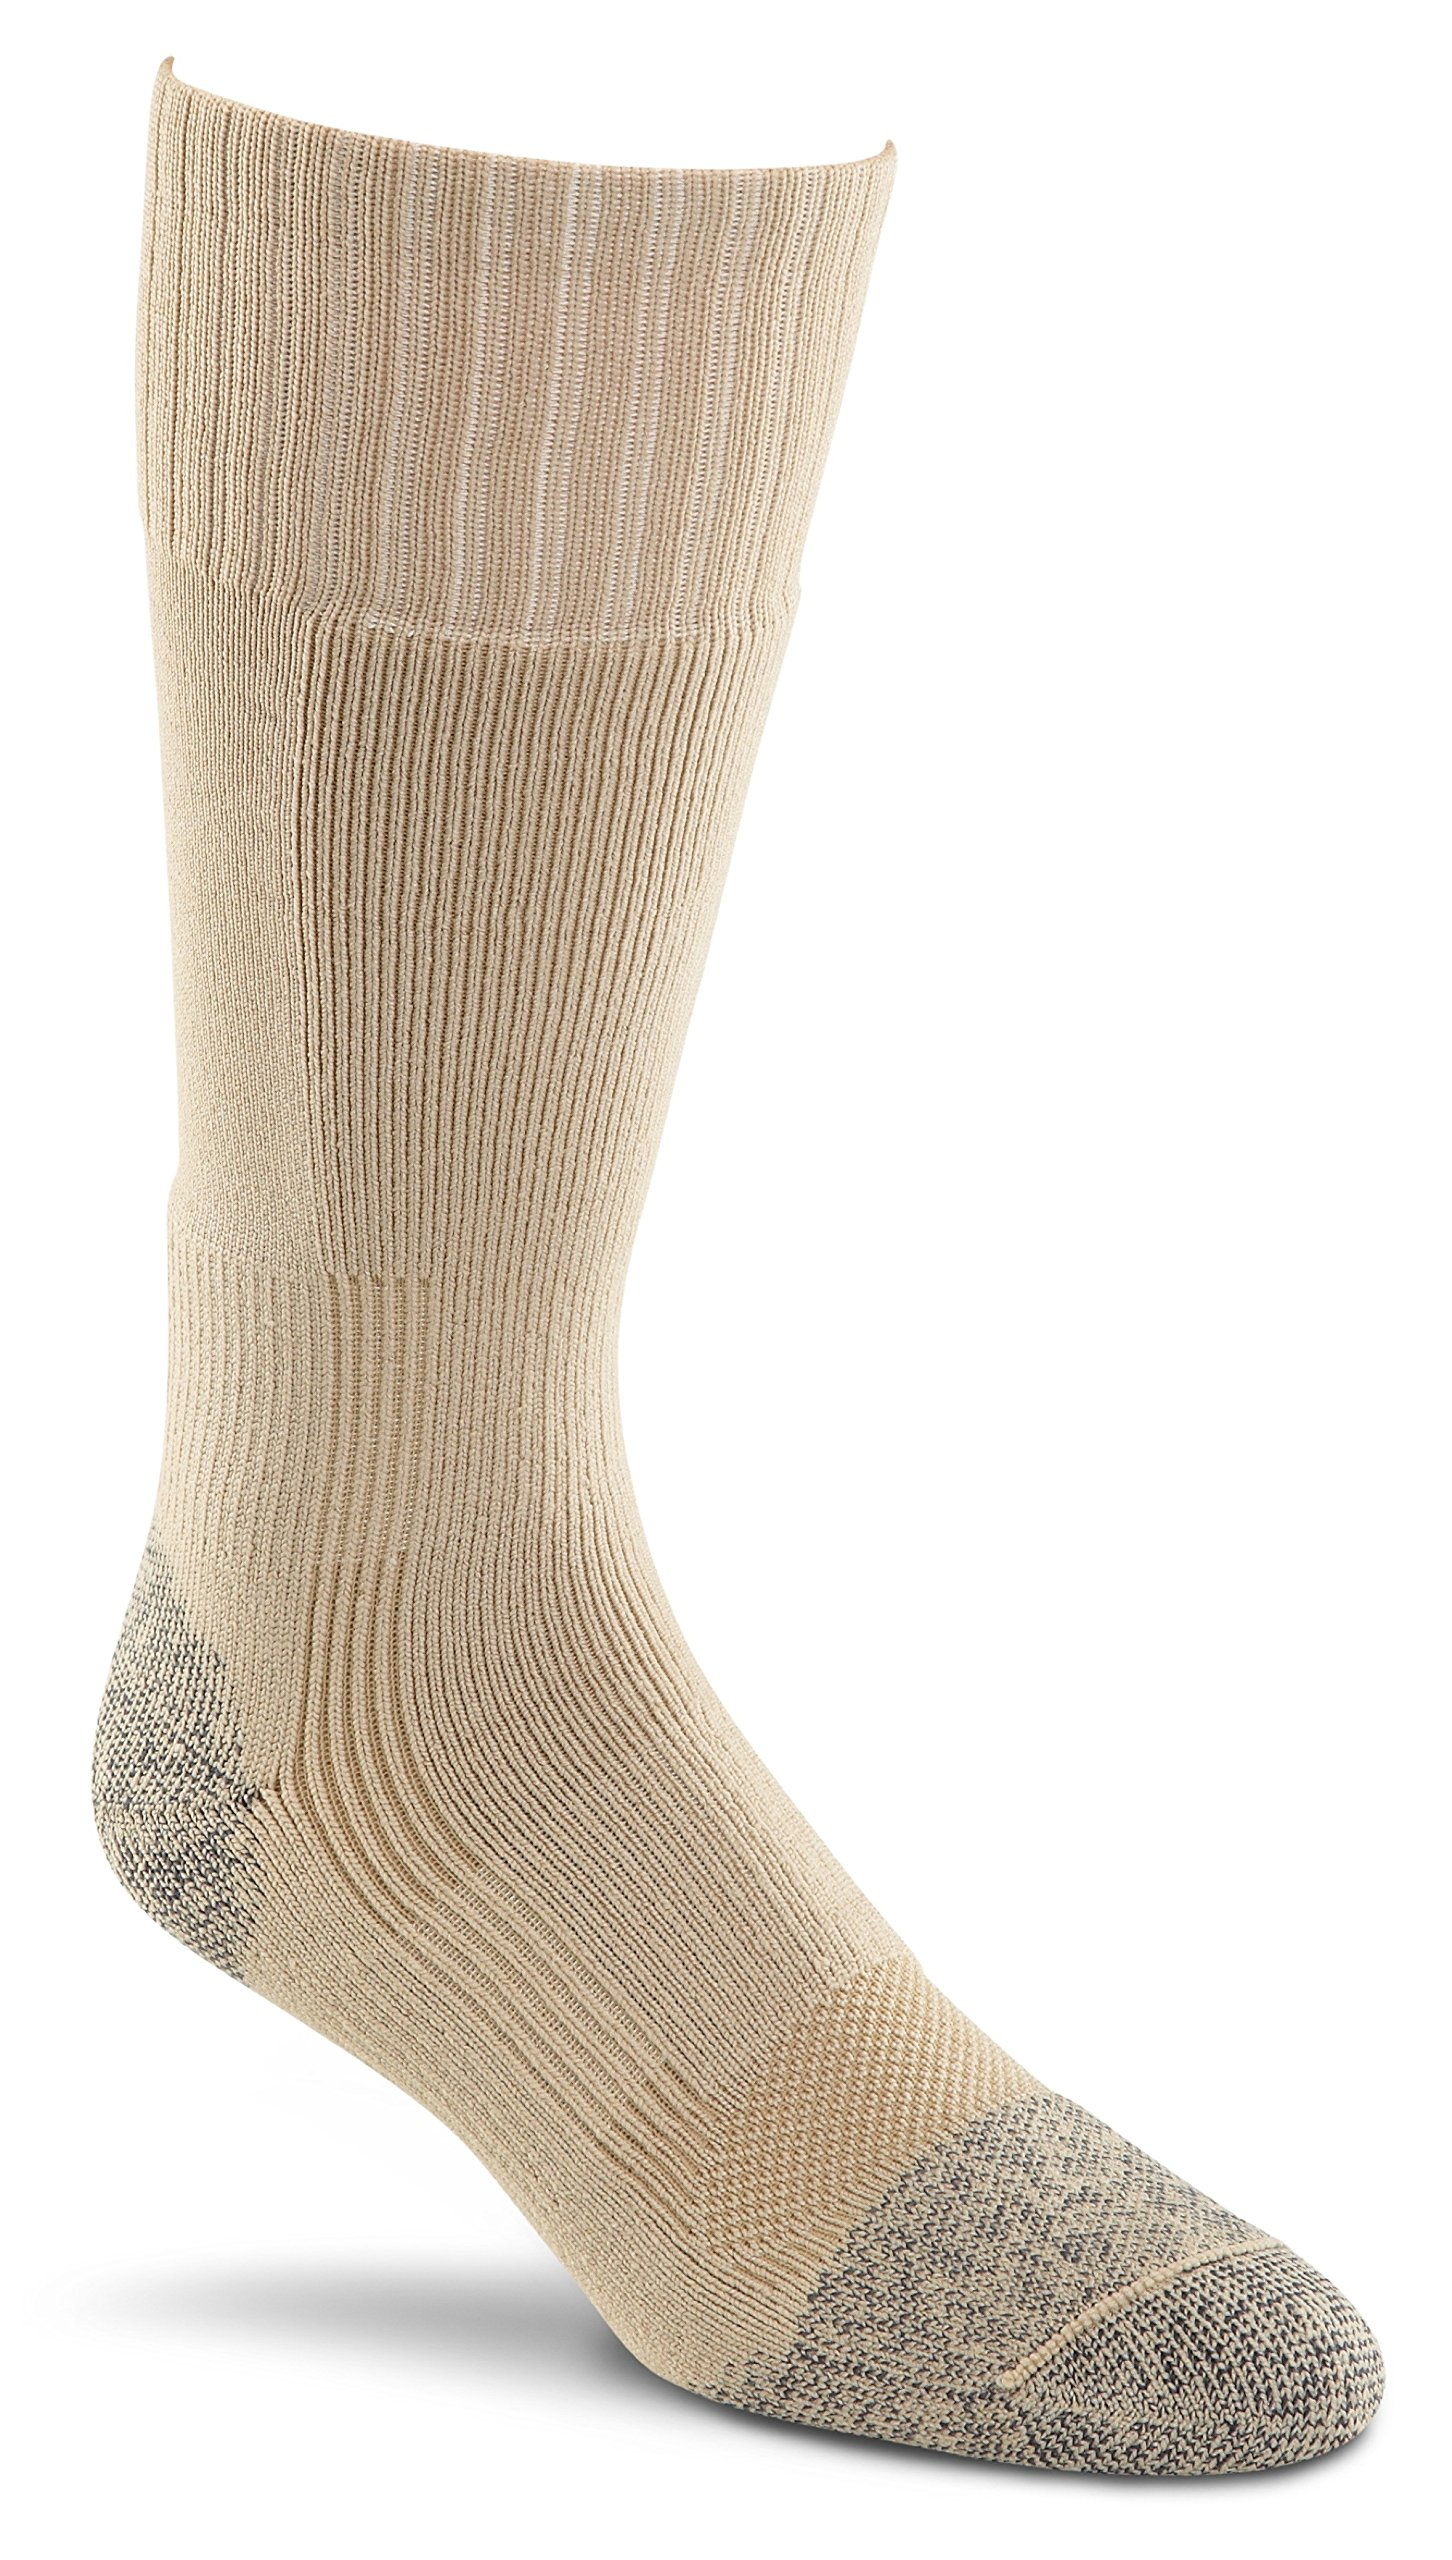 Fox River Military Wick Dry Maximum Mid Calf Boot Sock (Large/Beige) by FoxRiver